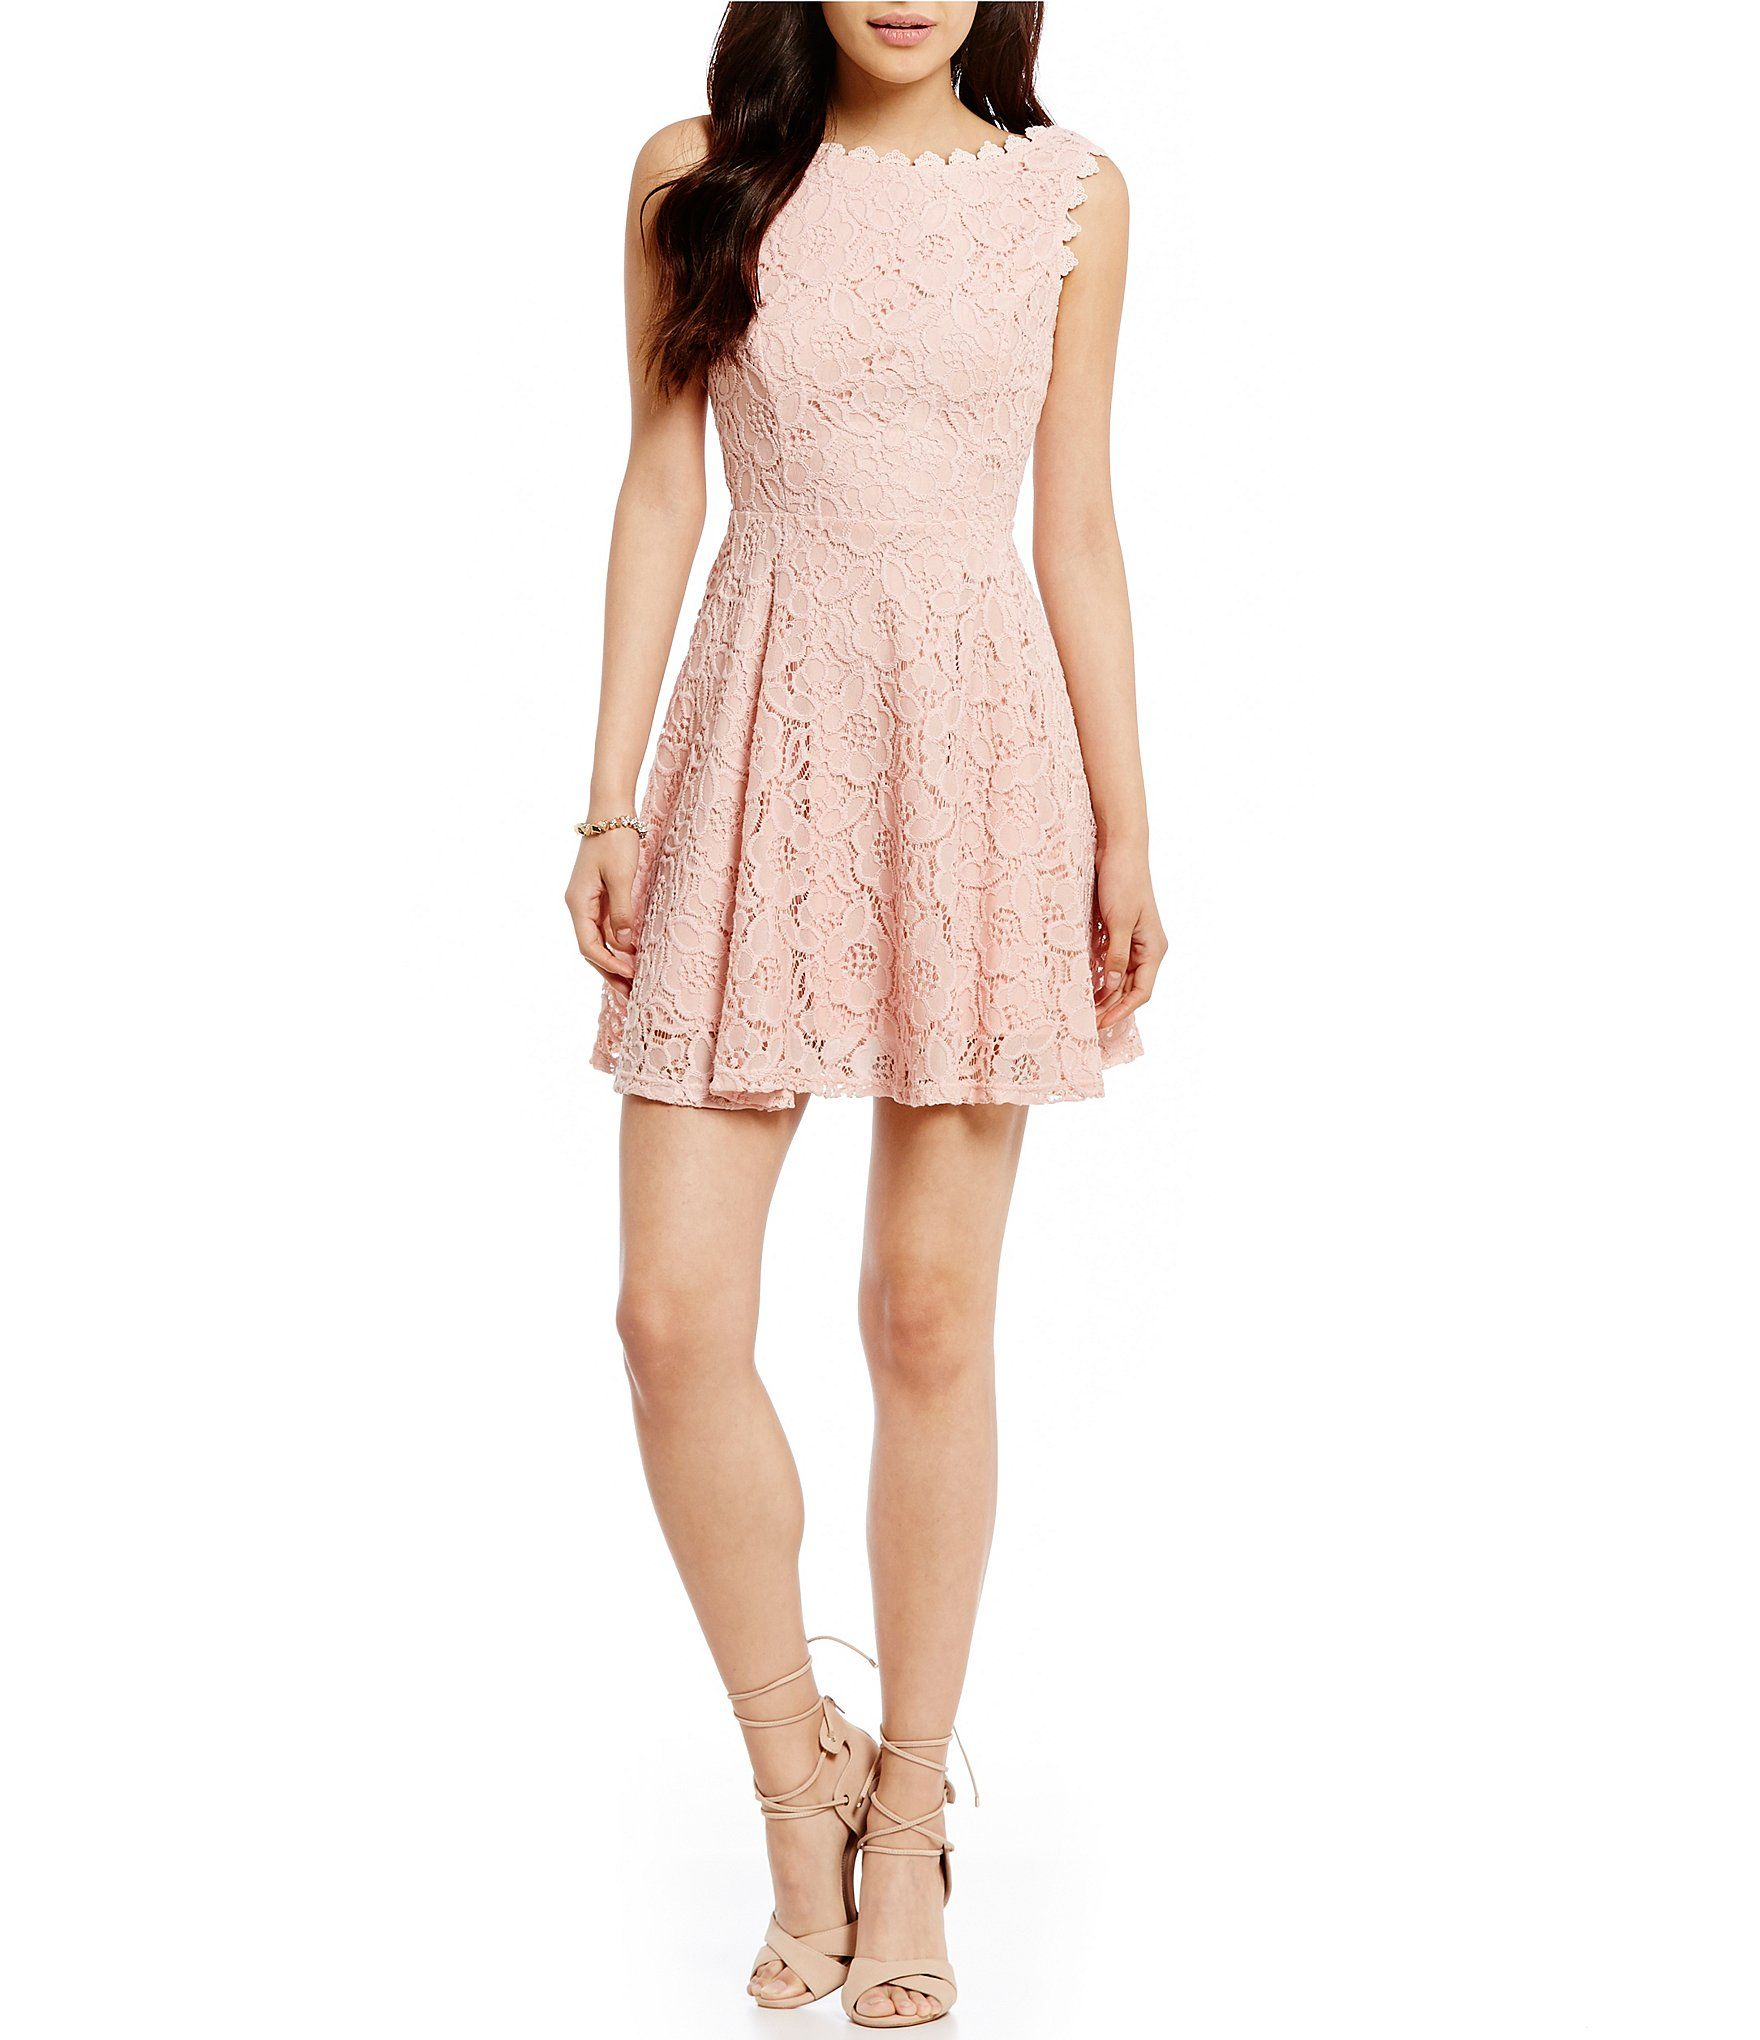 Jodi kristopher twotone lace aline dress dillards college